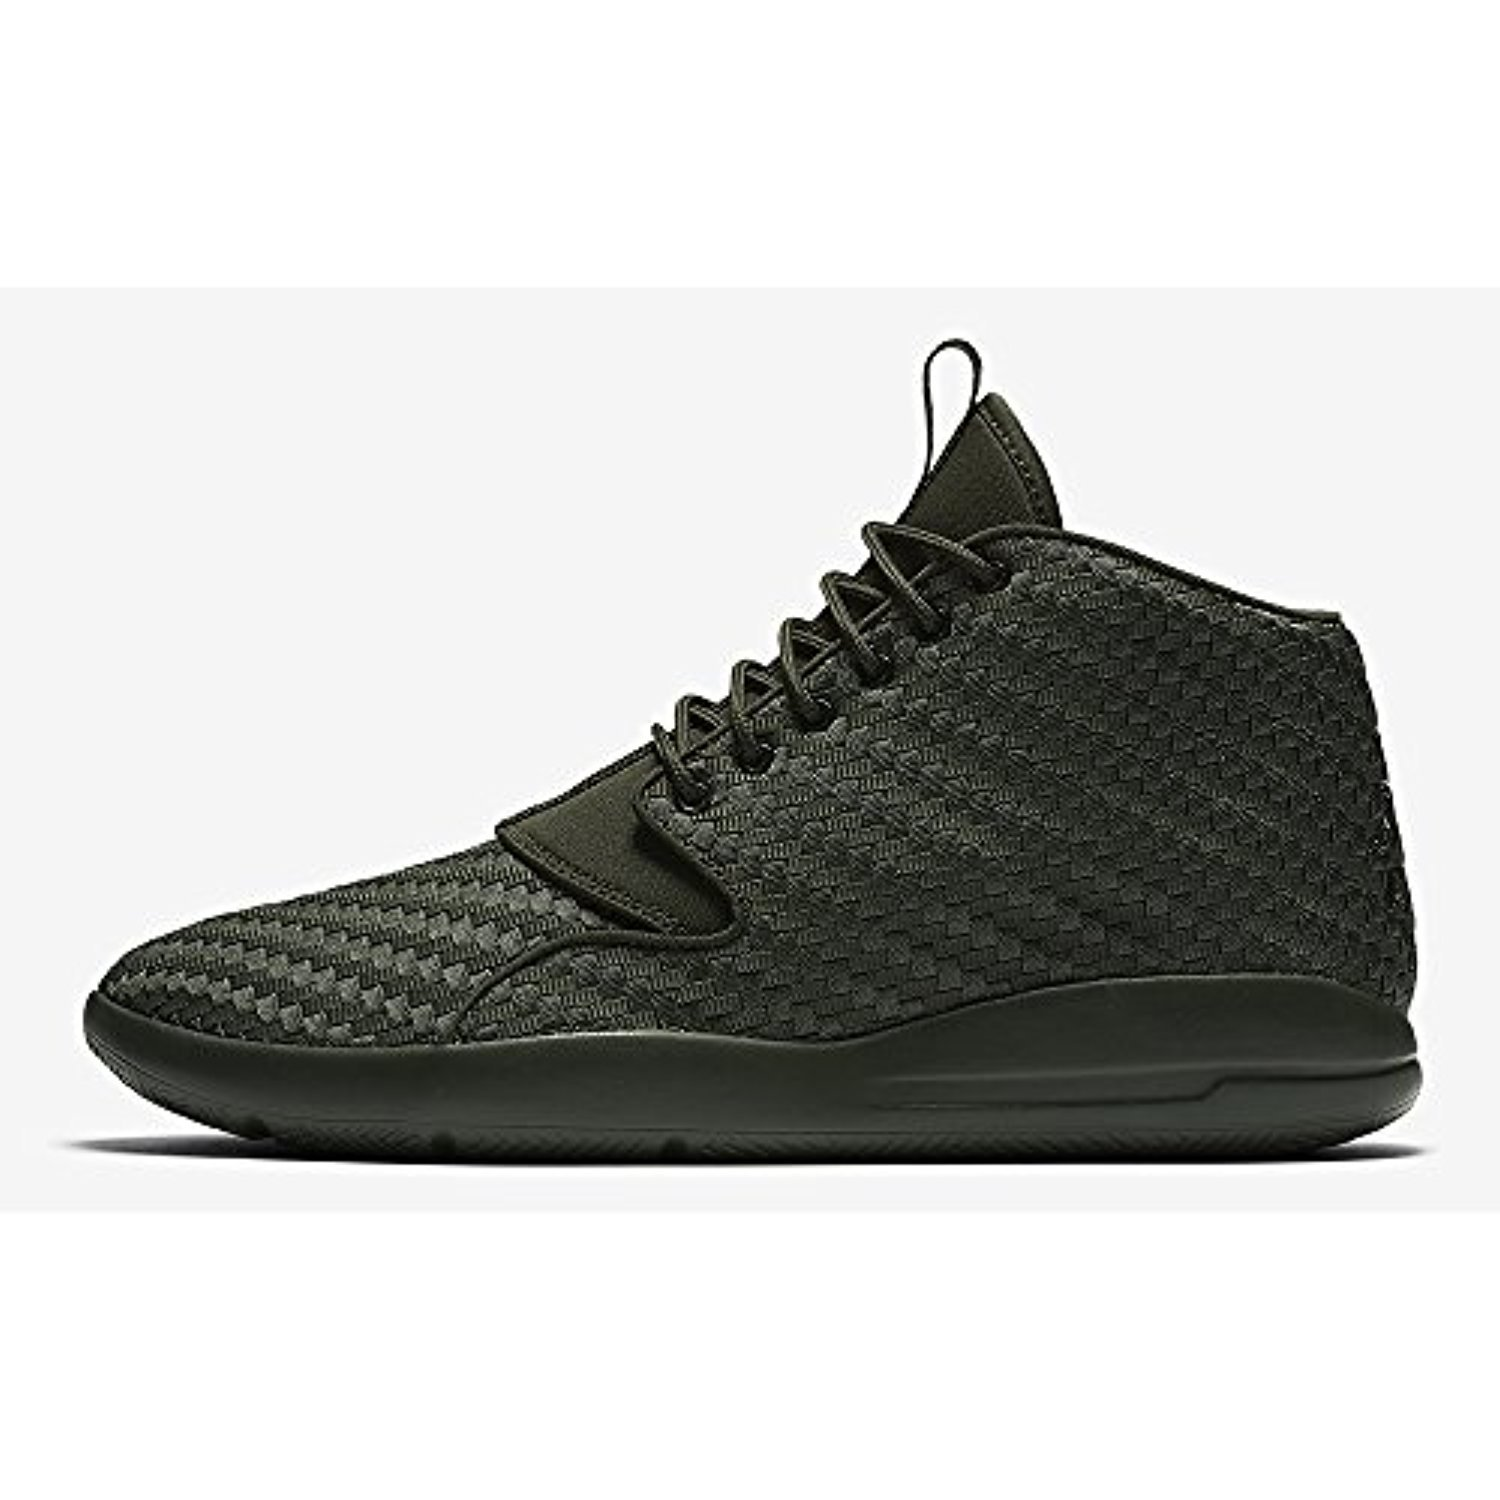 Jordan Nike Men's Eclipse Chukka Basketball Shoe B00D8HS8B0 8 D(M) US|Sequoia/Black